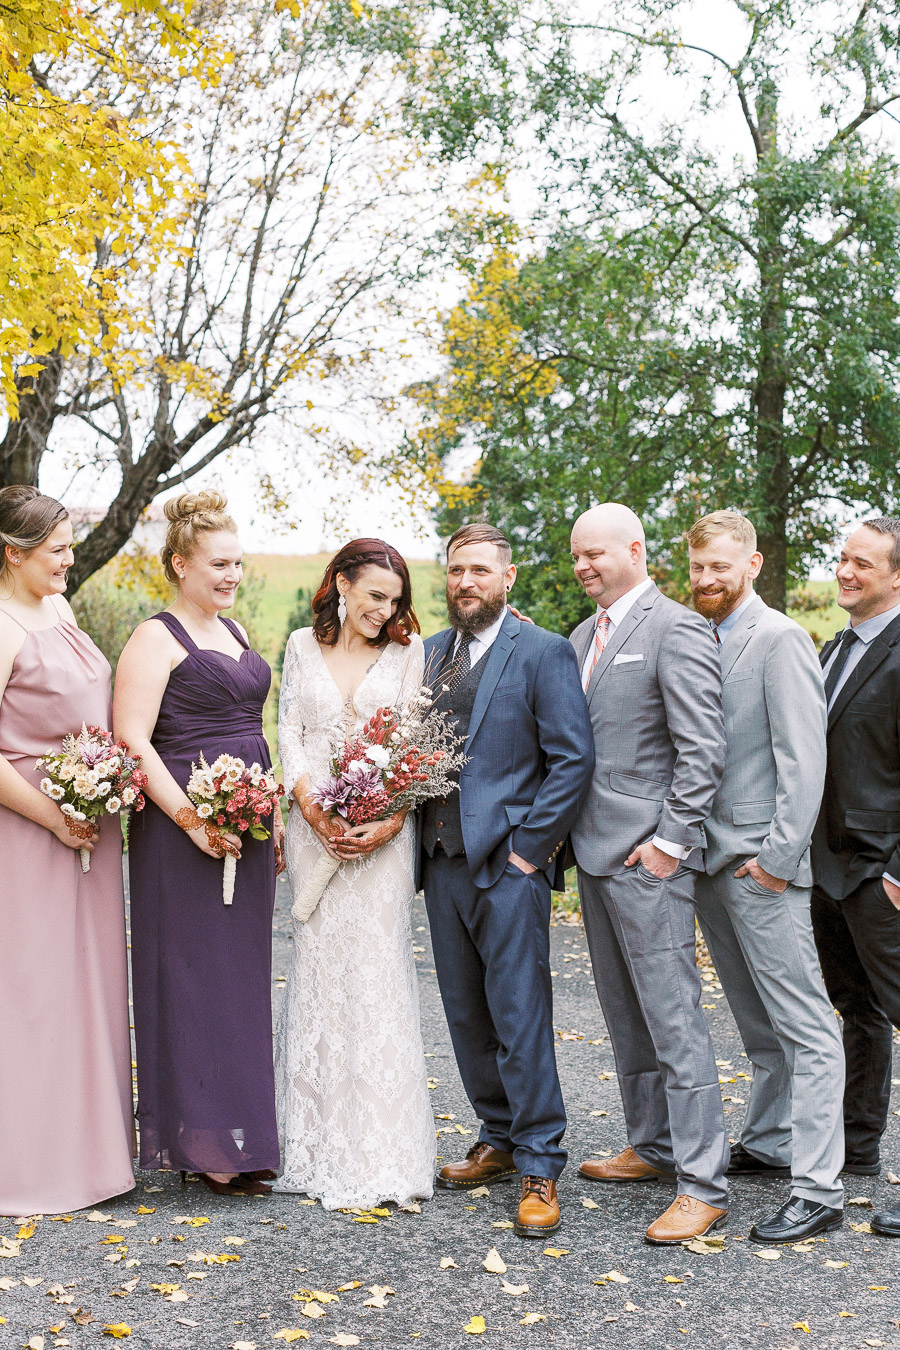 rainy-wedding-day-bridal-party-michelle-whitley